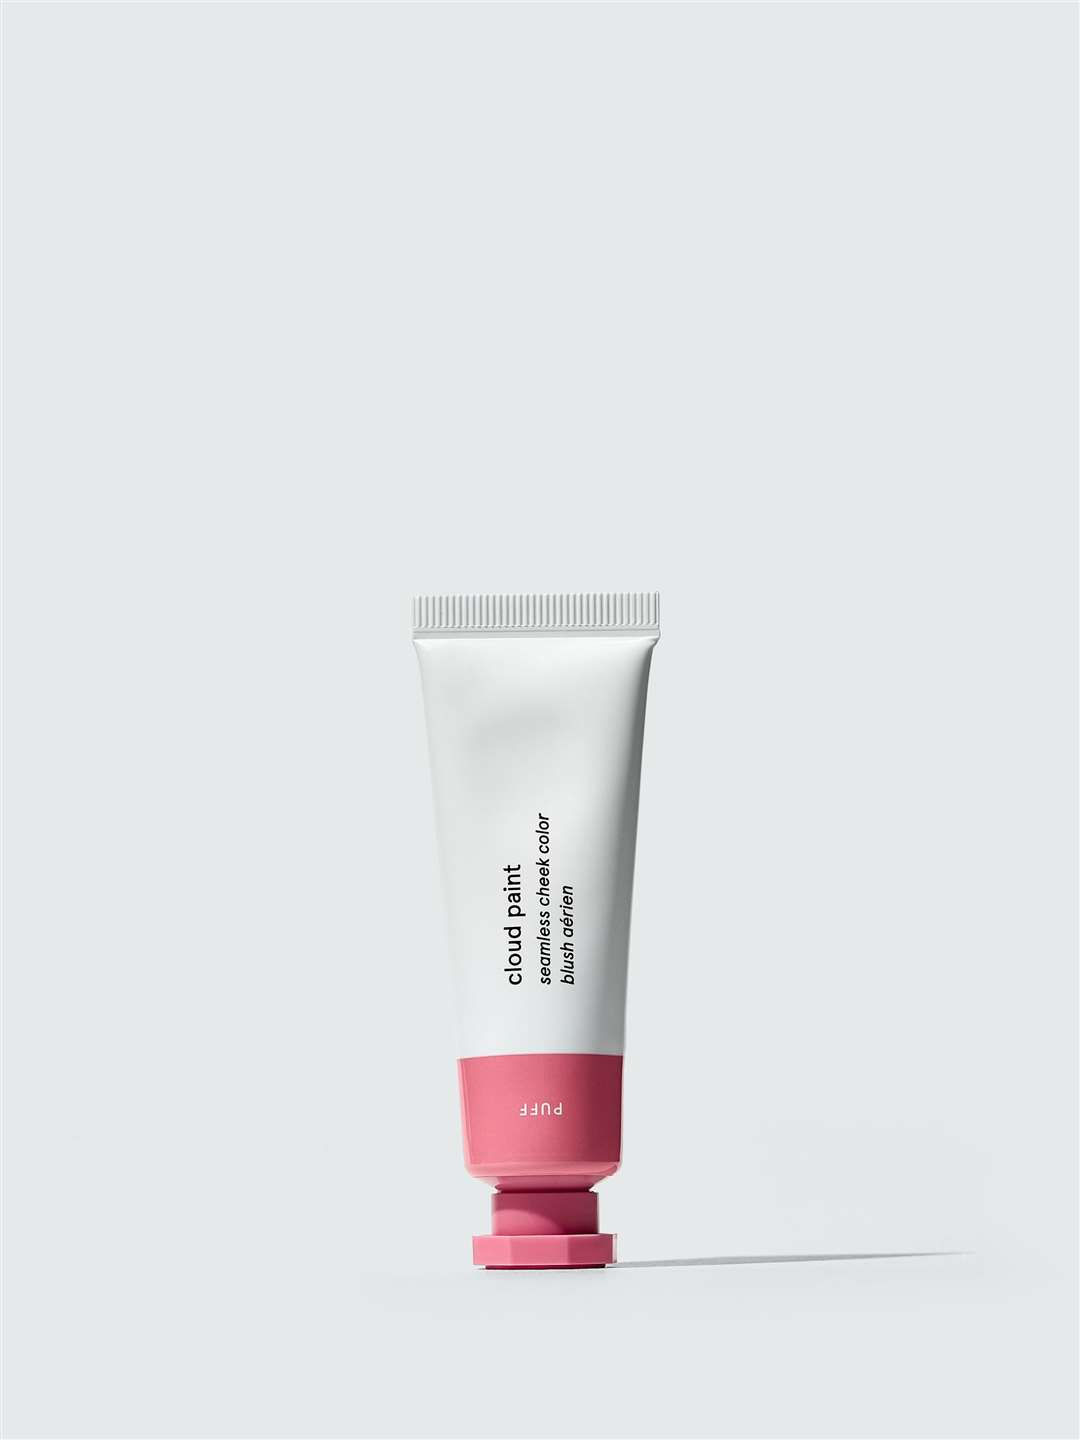 Glossier Cloud Paint in Puff, £15, glossier.com (26882935)